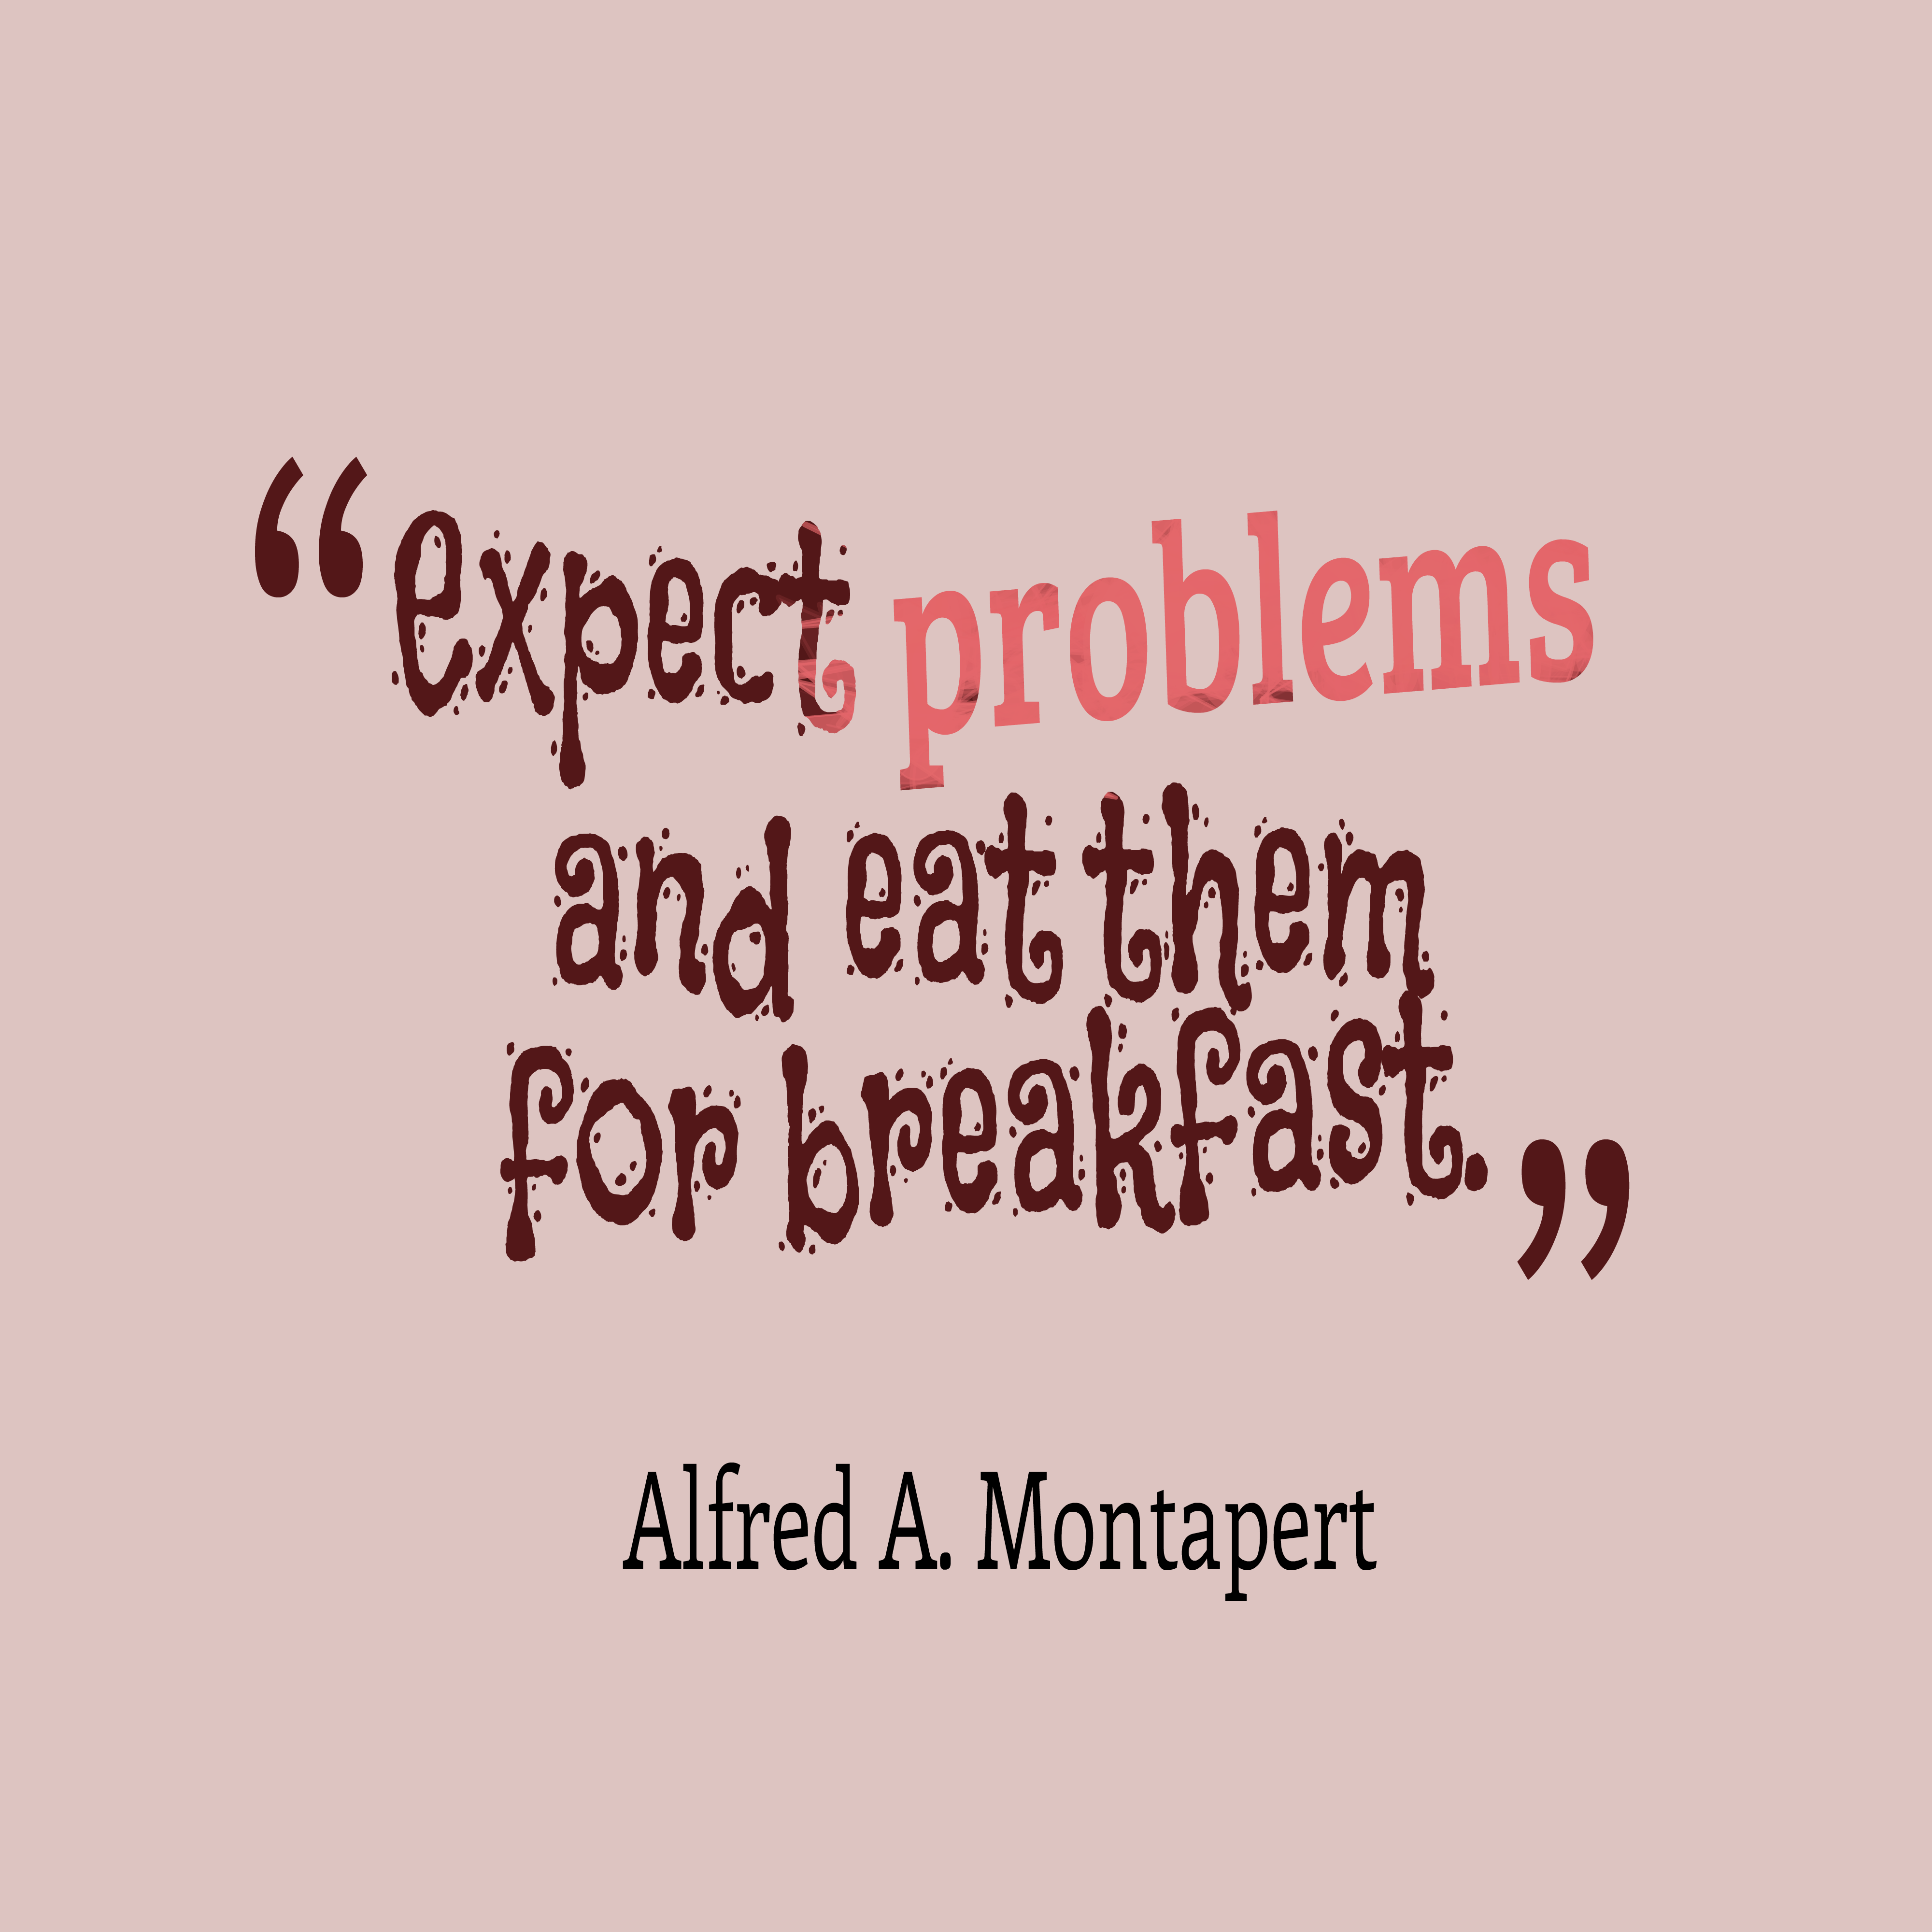 Expect problems and eat them for breakfast. Alfred A. Montapert